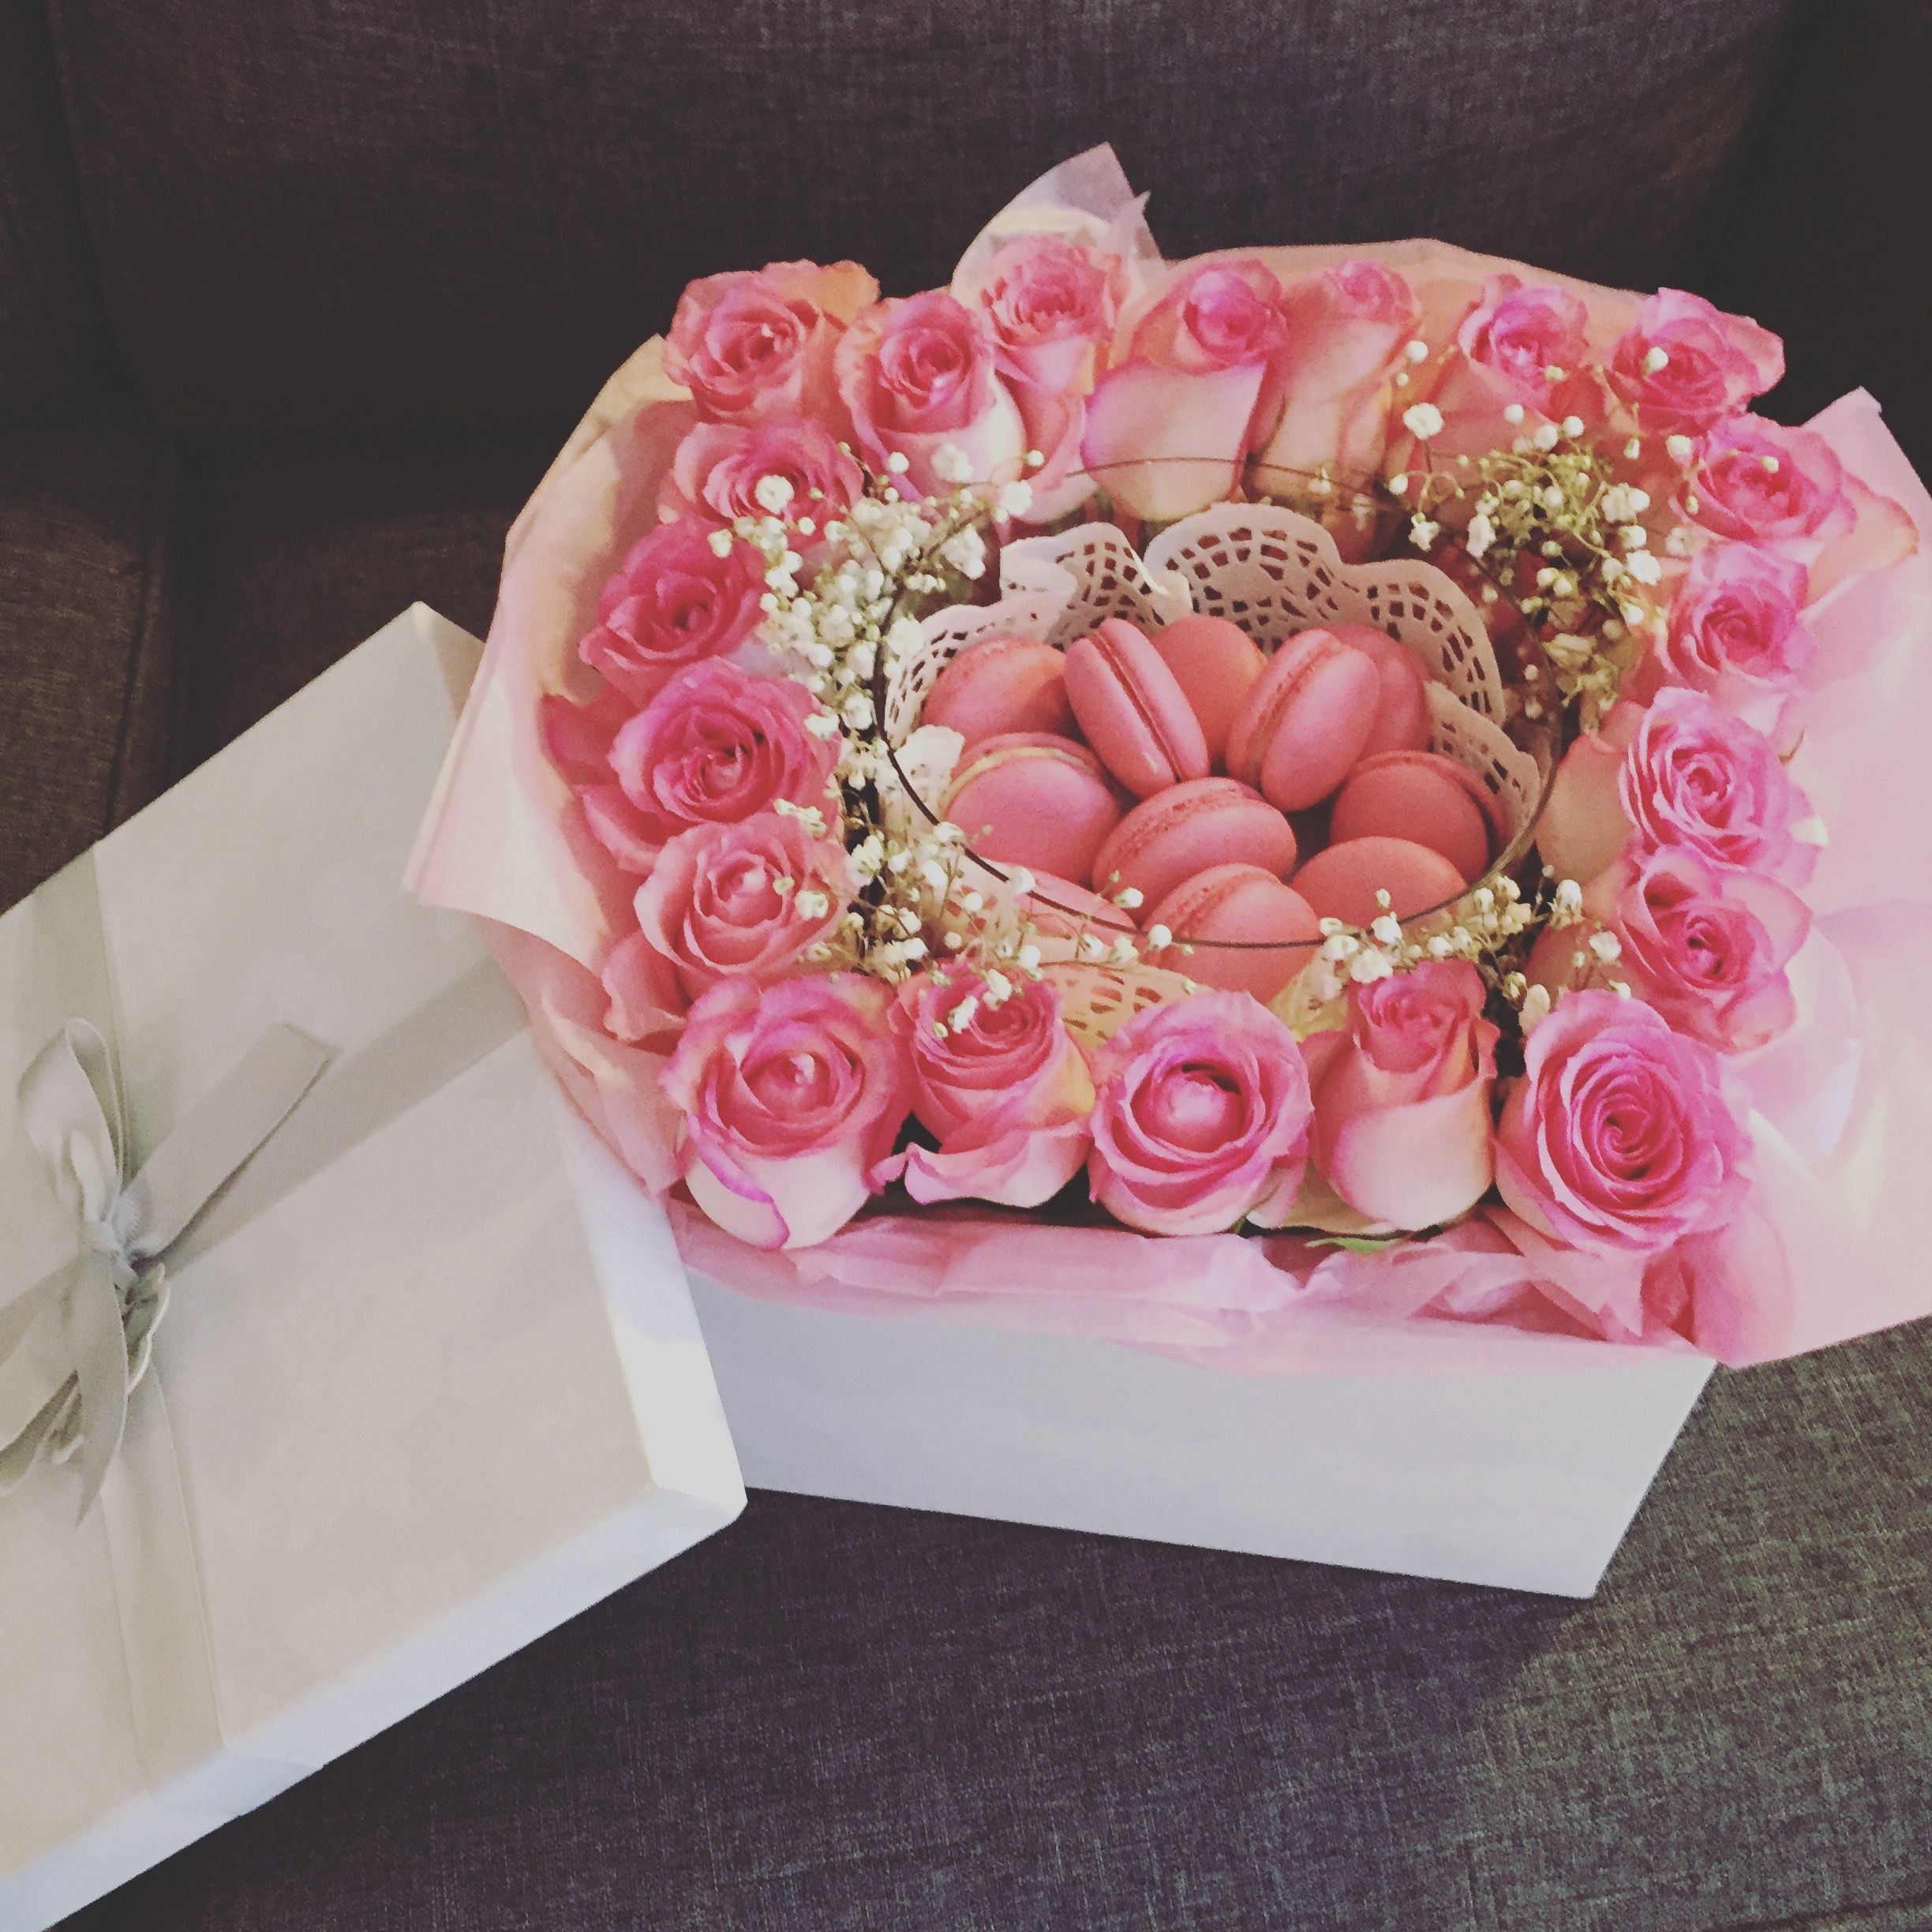 Flowers And Macarons In A Box Flower Box Gift Flowers Bouquet Gift Flowers Bouquet